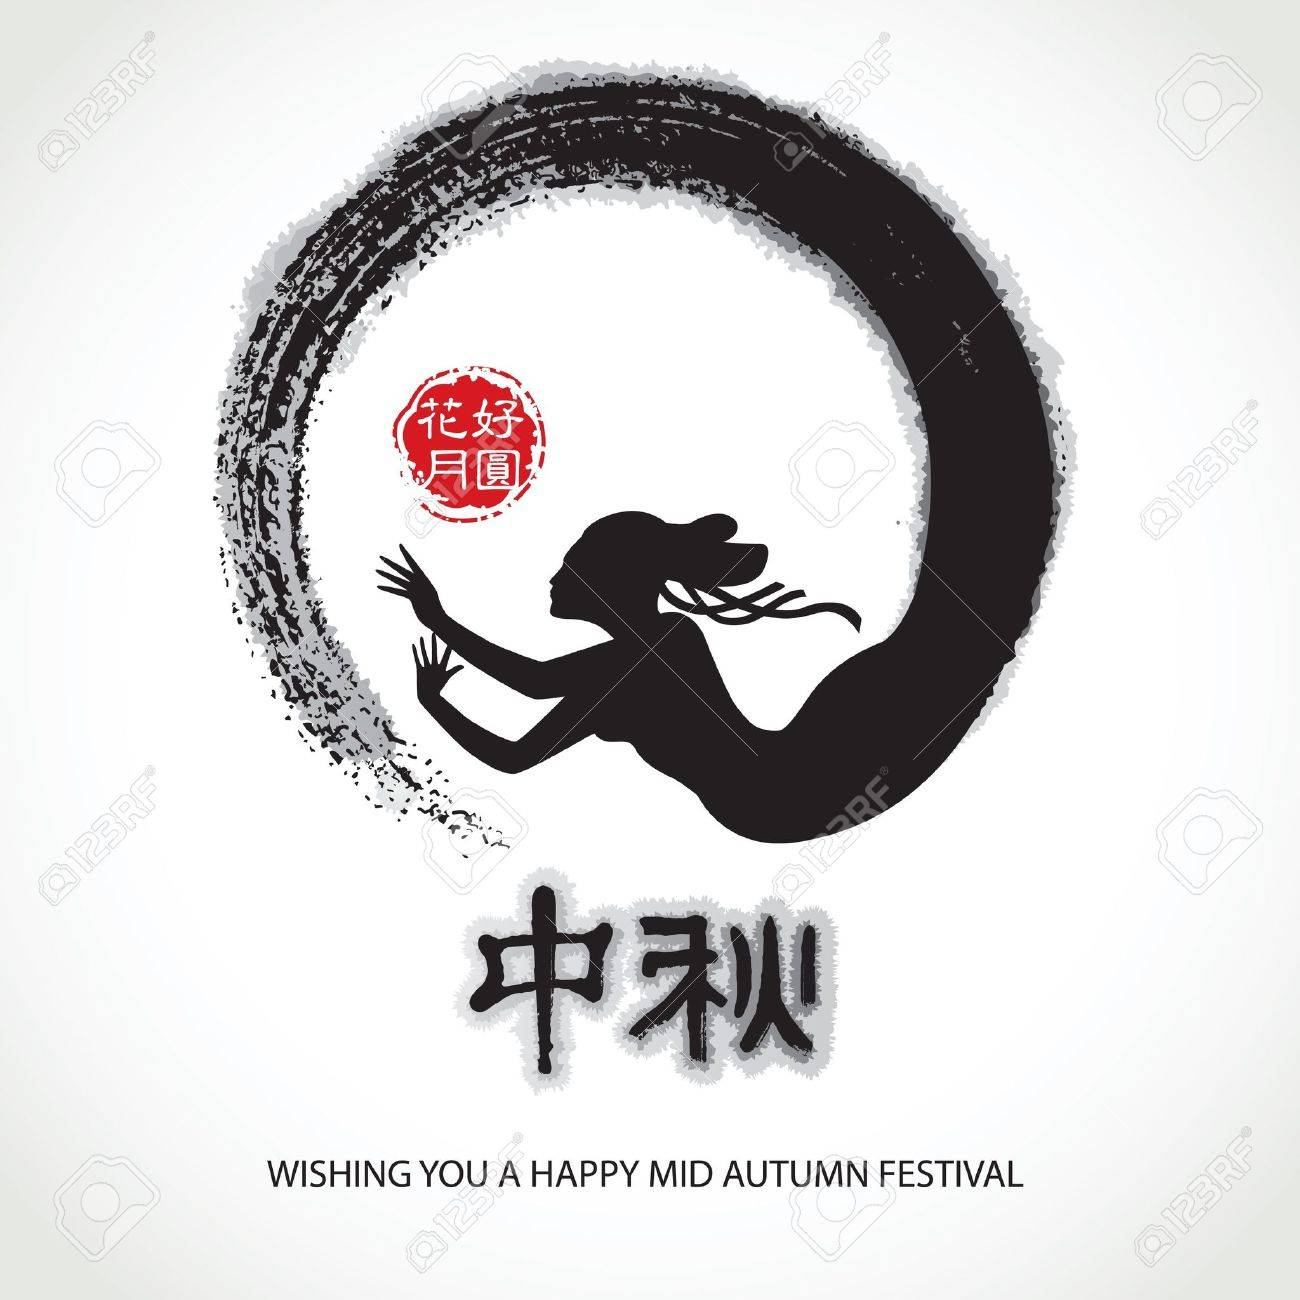 Chinese moon festival graphic design royalty free cliparts chinese moon festival graphic design stock vector 22127891 buycottarizona Gallery